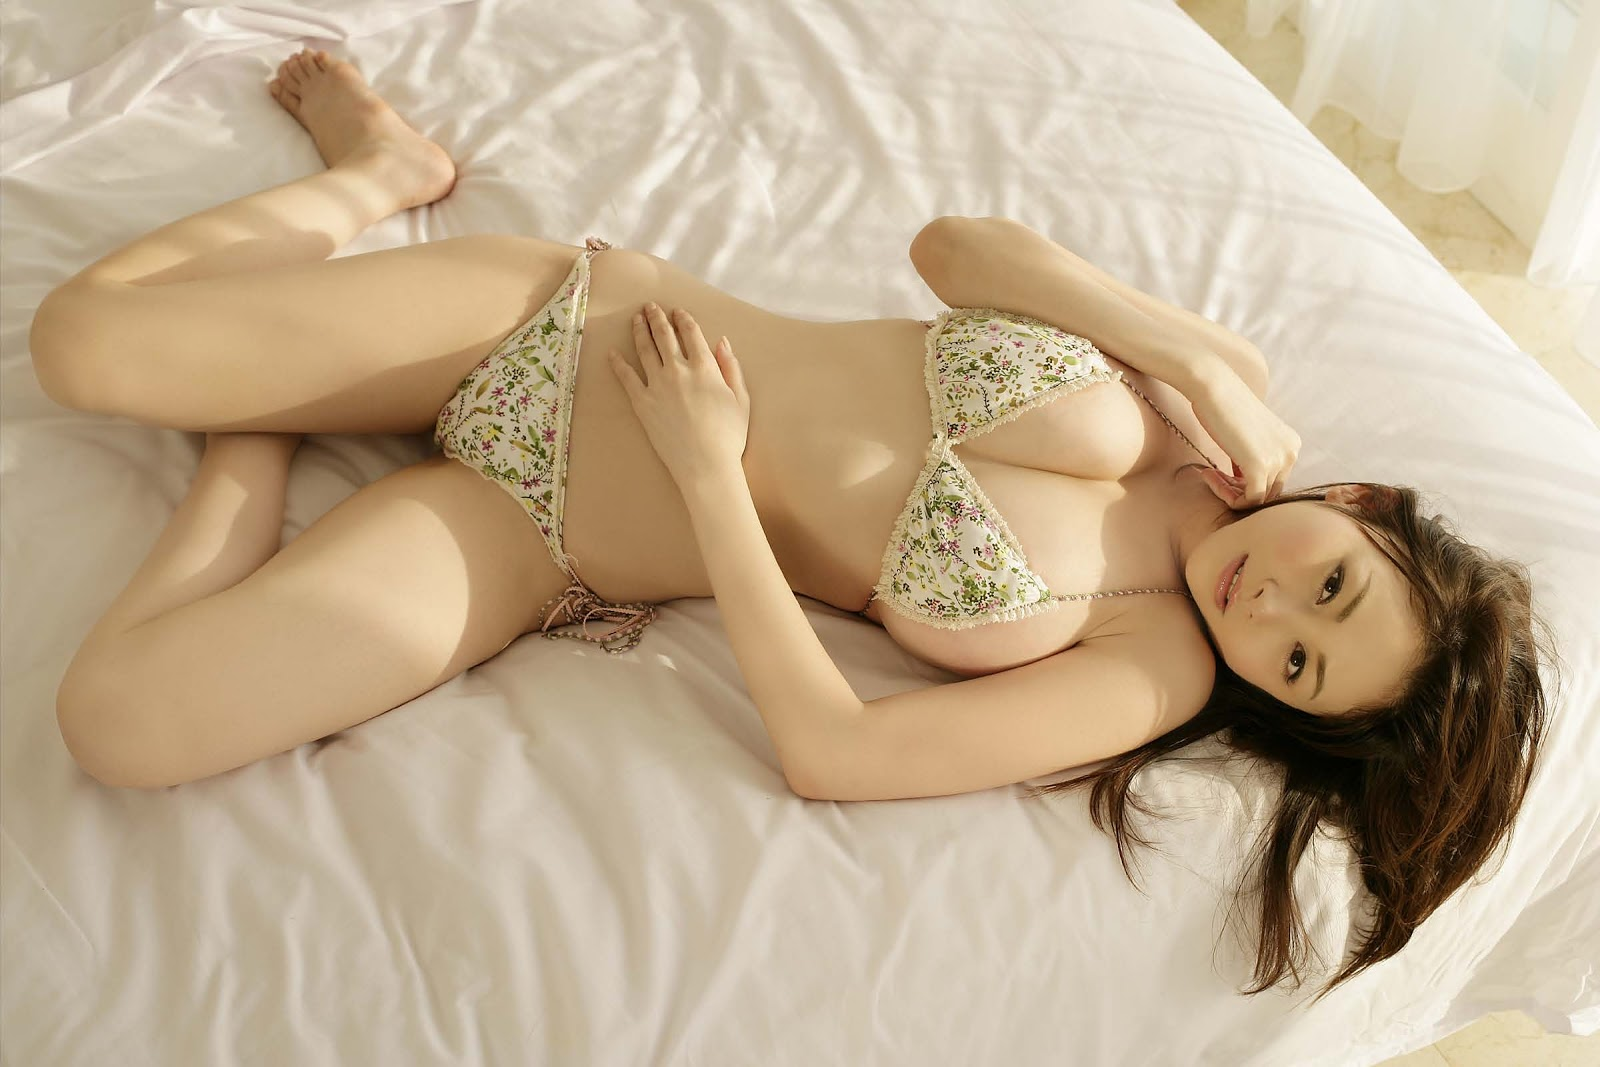 Japan's most famous cosplayer breaks the internet after doing swimsuit photoshoot